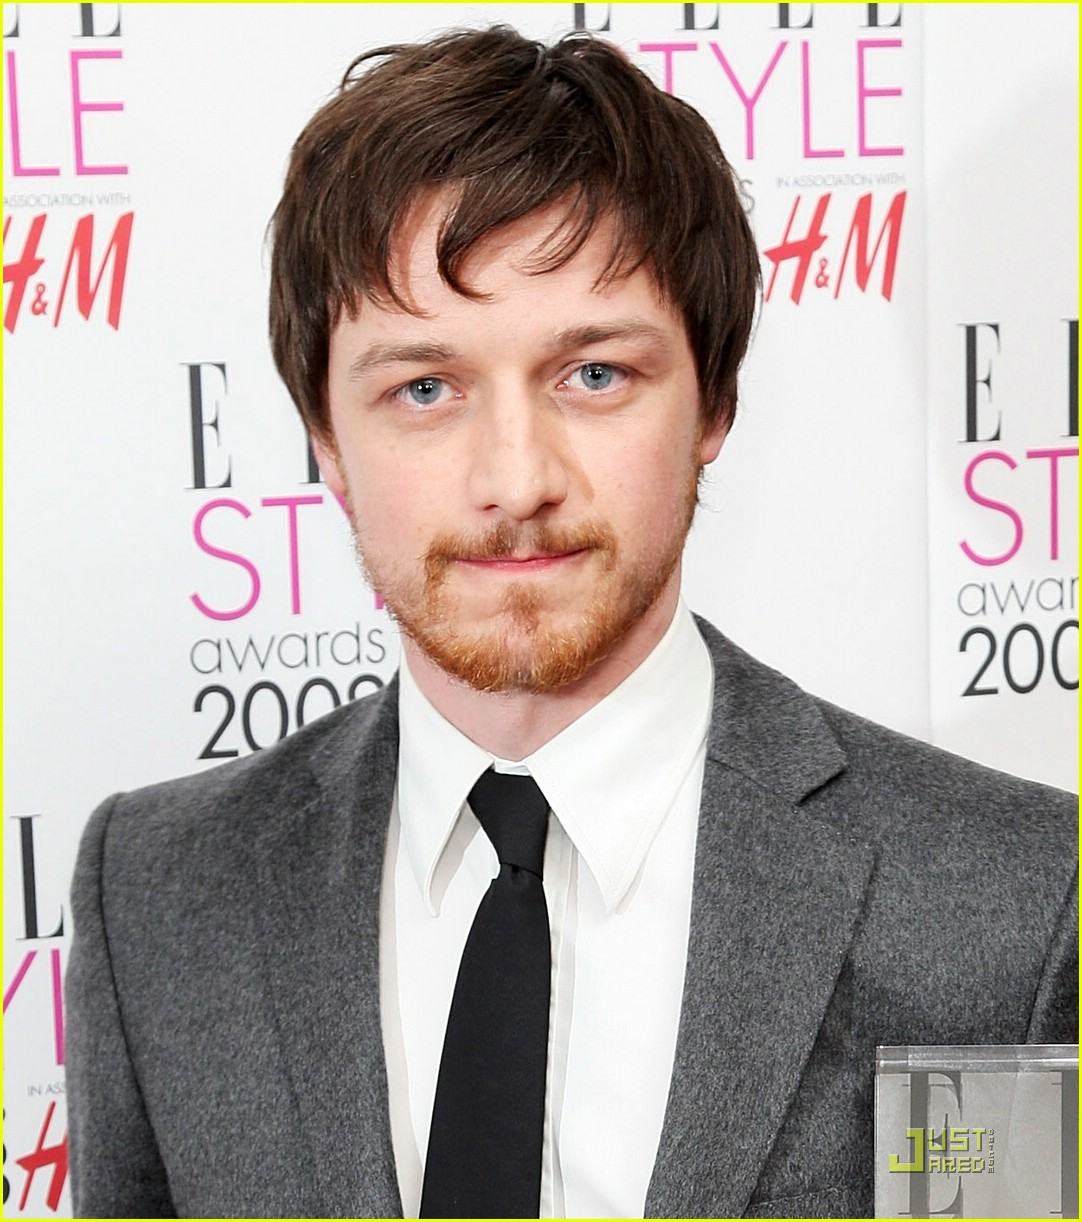 James Mcavoy X Men Wheelchair James mcavoy gives x-menJames Mcavoy X Men Wheelchair